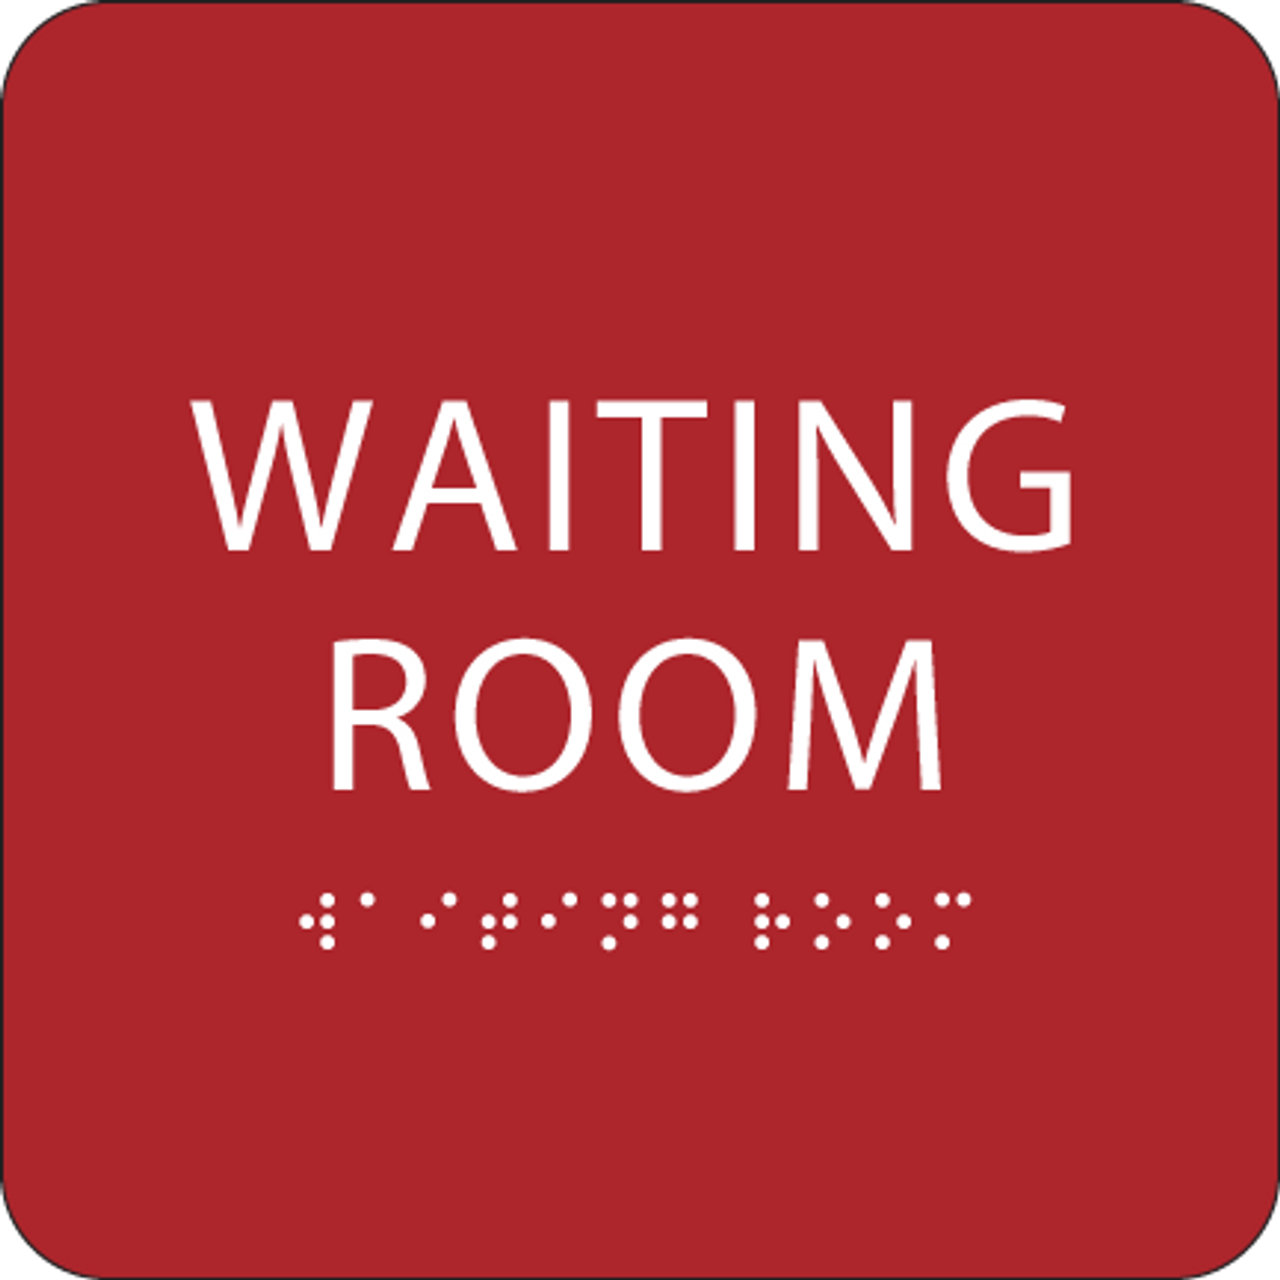 Red Waiting Room ADA Sign